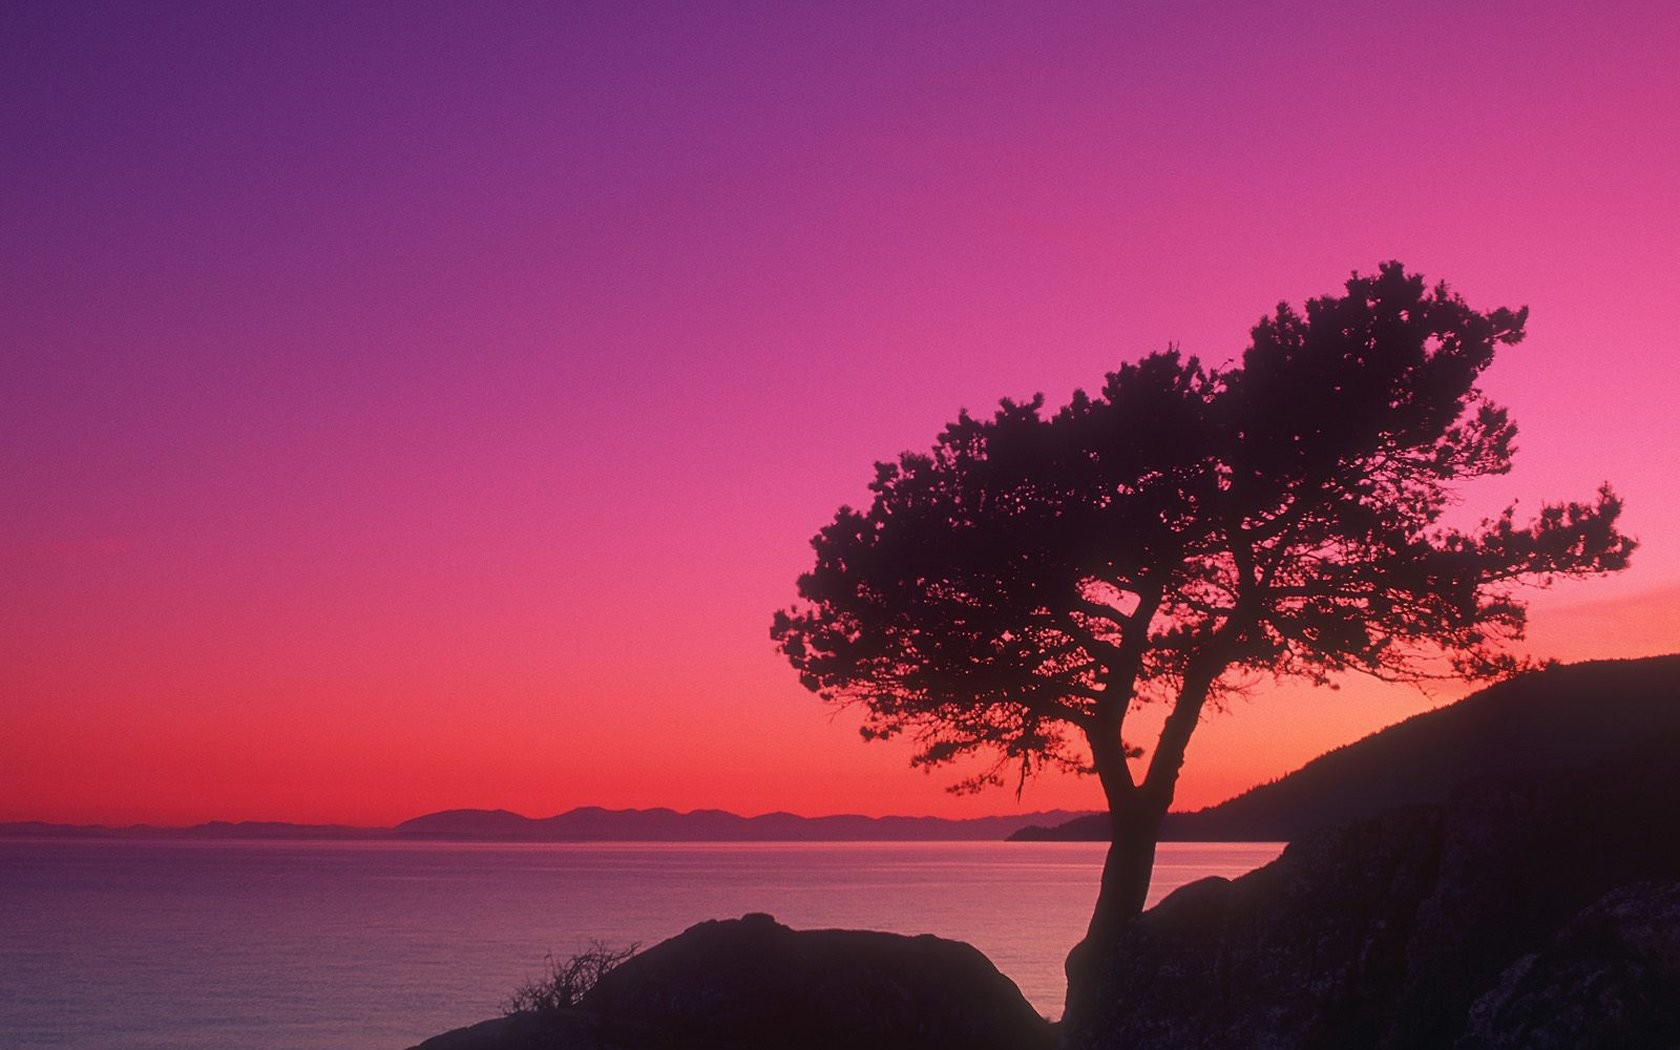 British Columbia colors Twilight Time of day wallpaper background 1680x1050